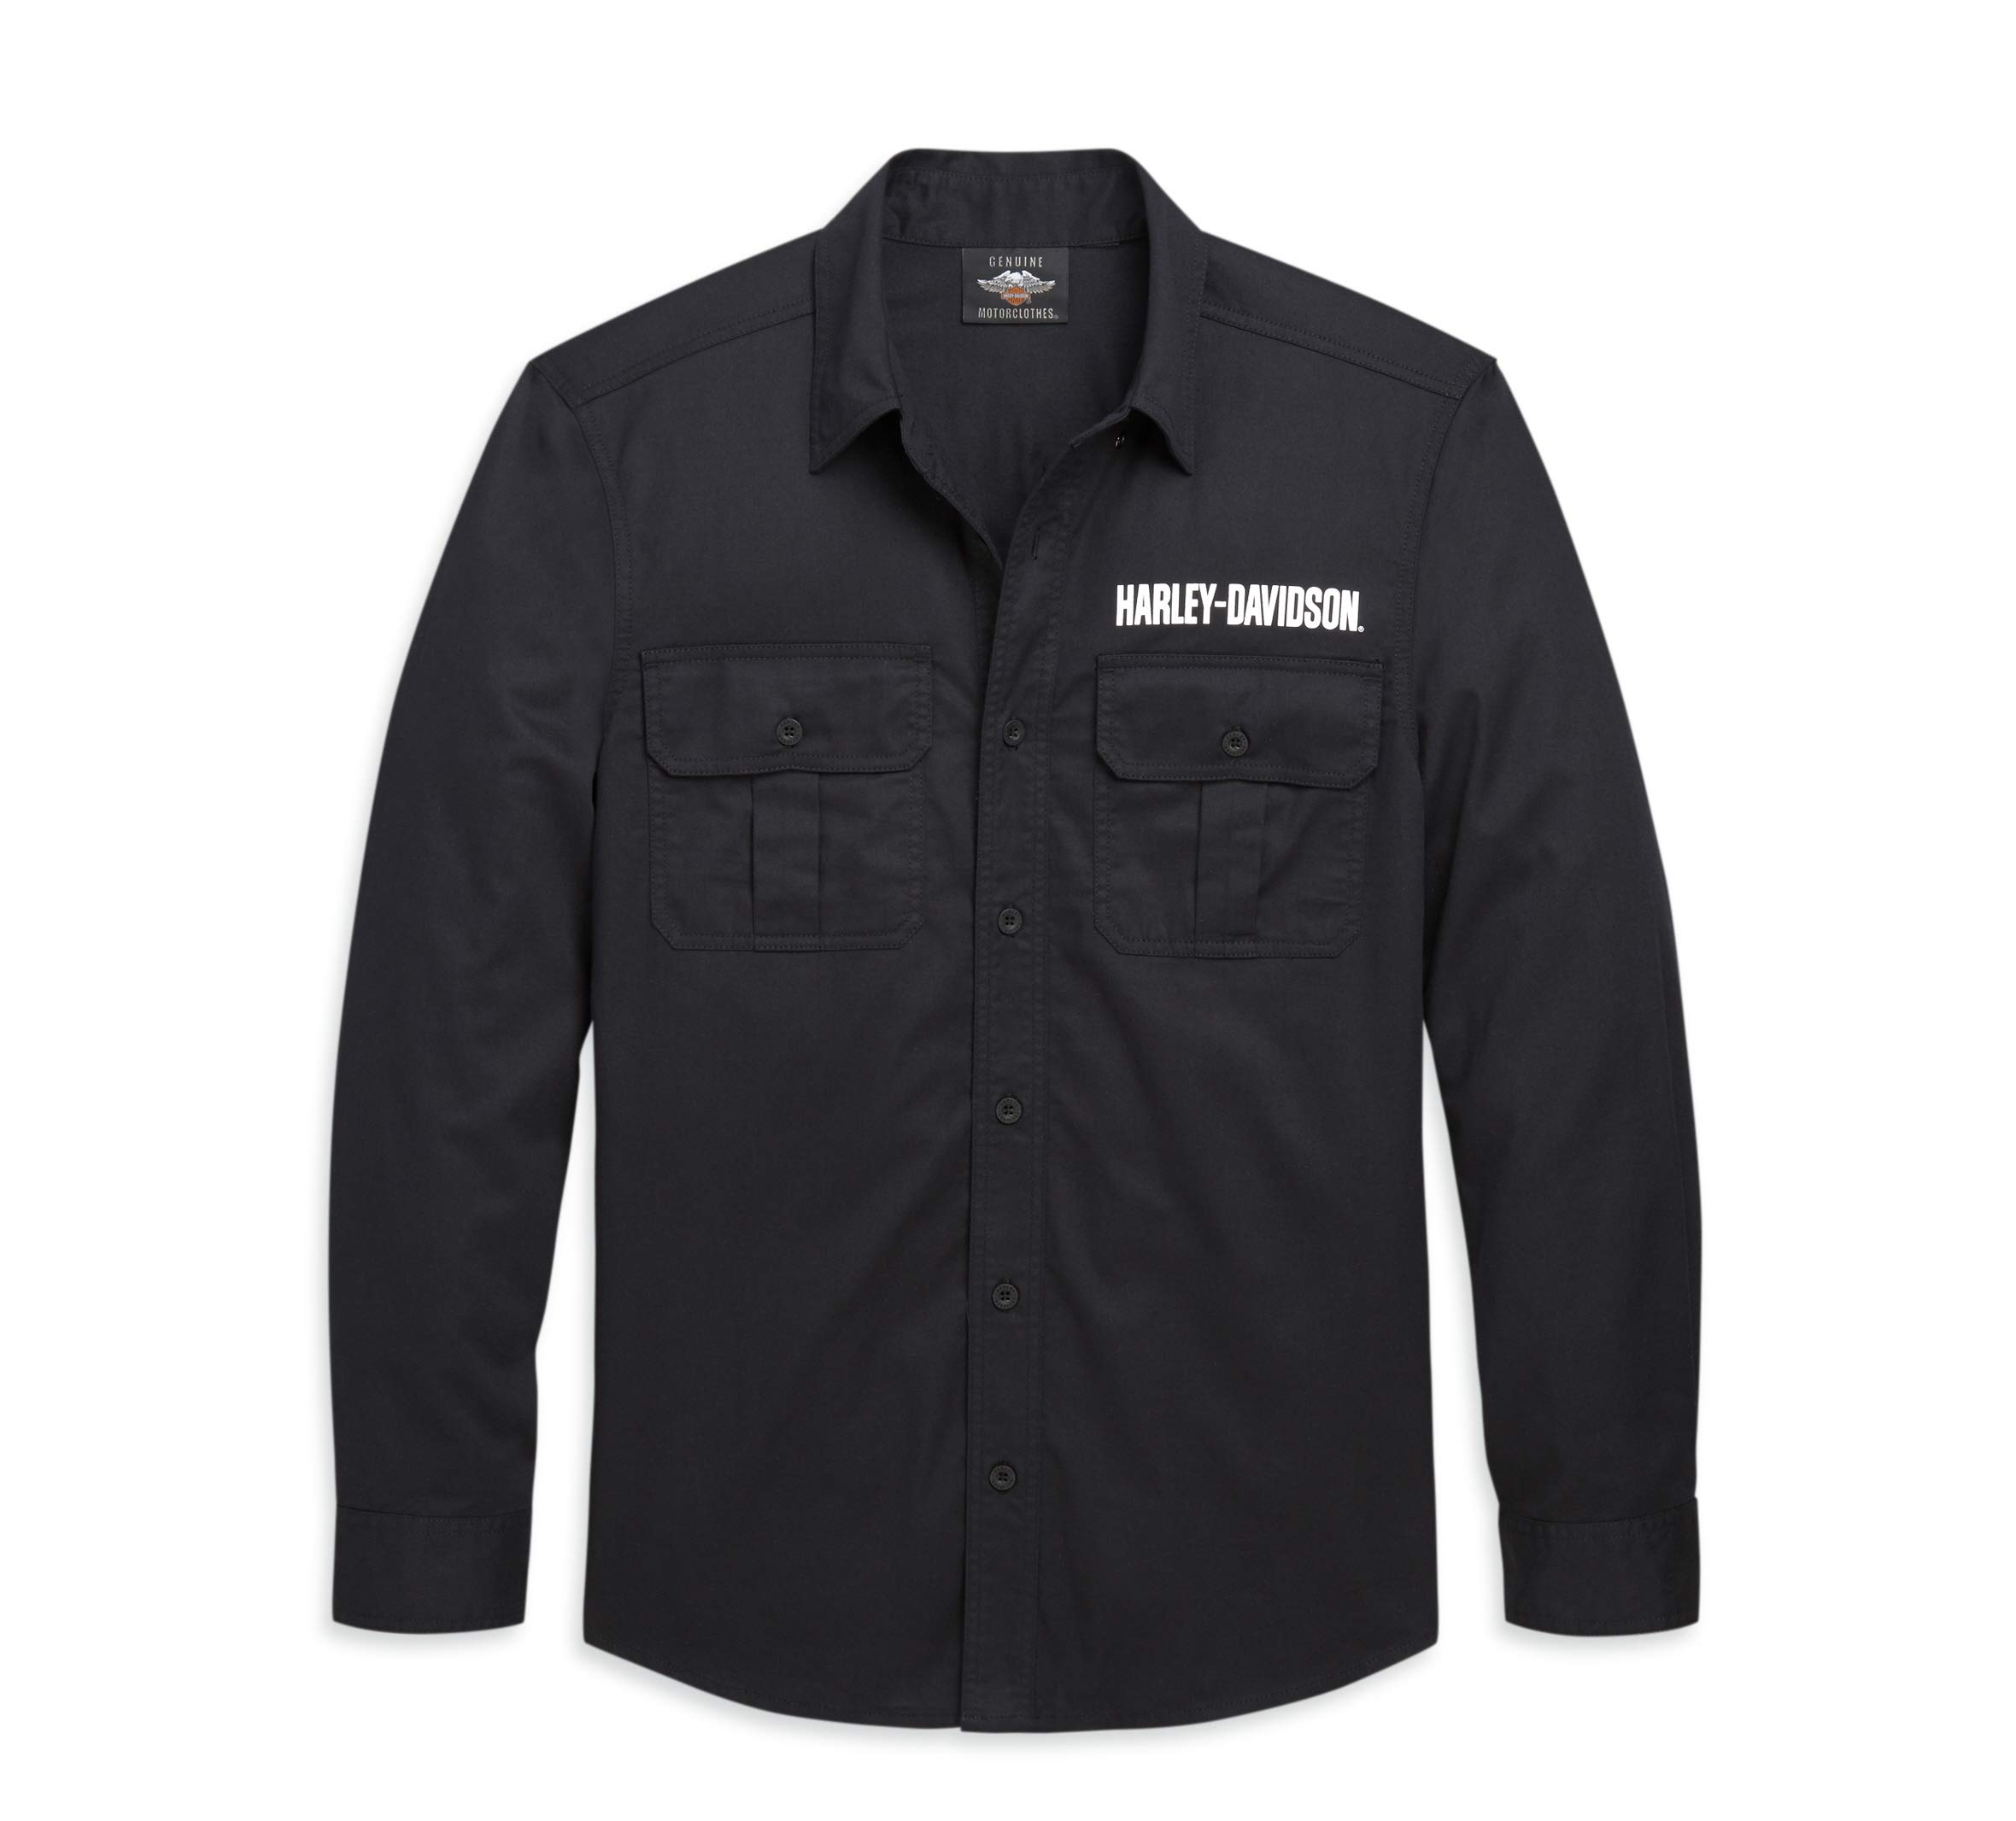 Harley-Davidson Men's #1 Long Sleeve Button-Down Shirt